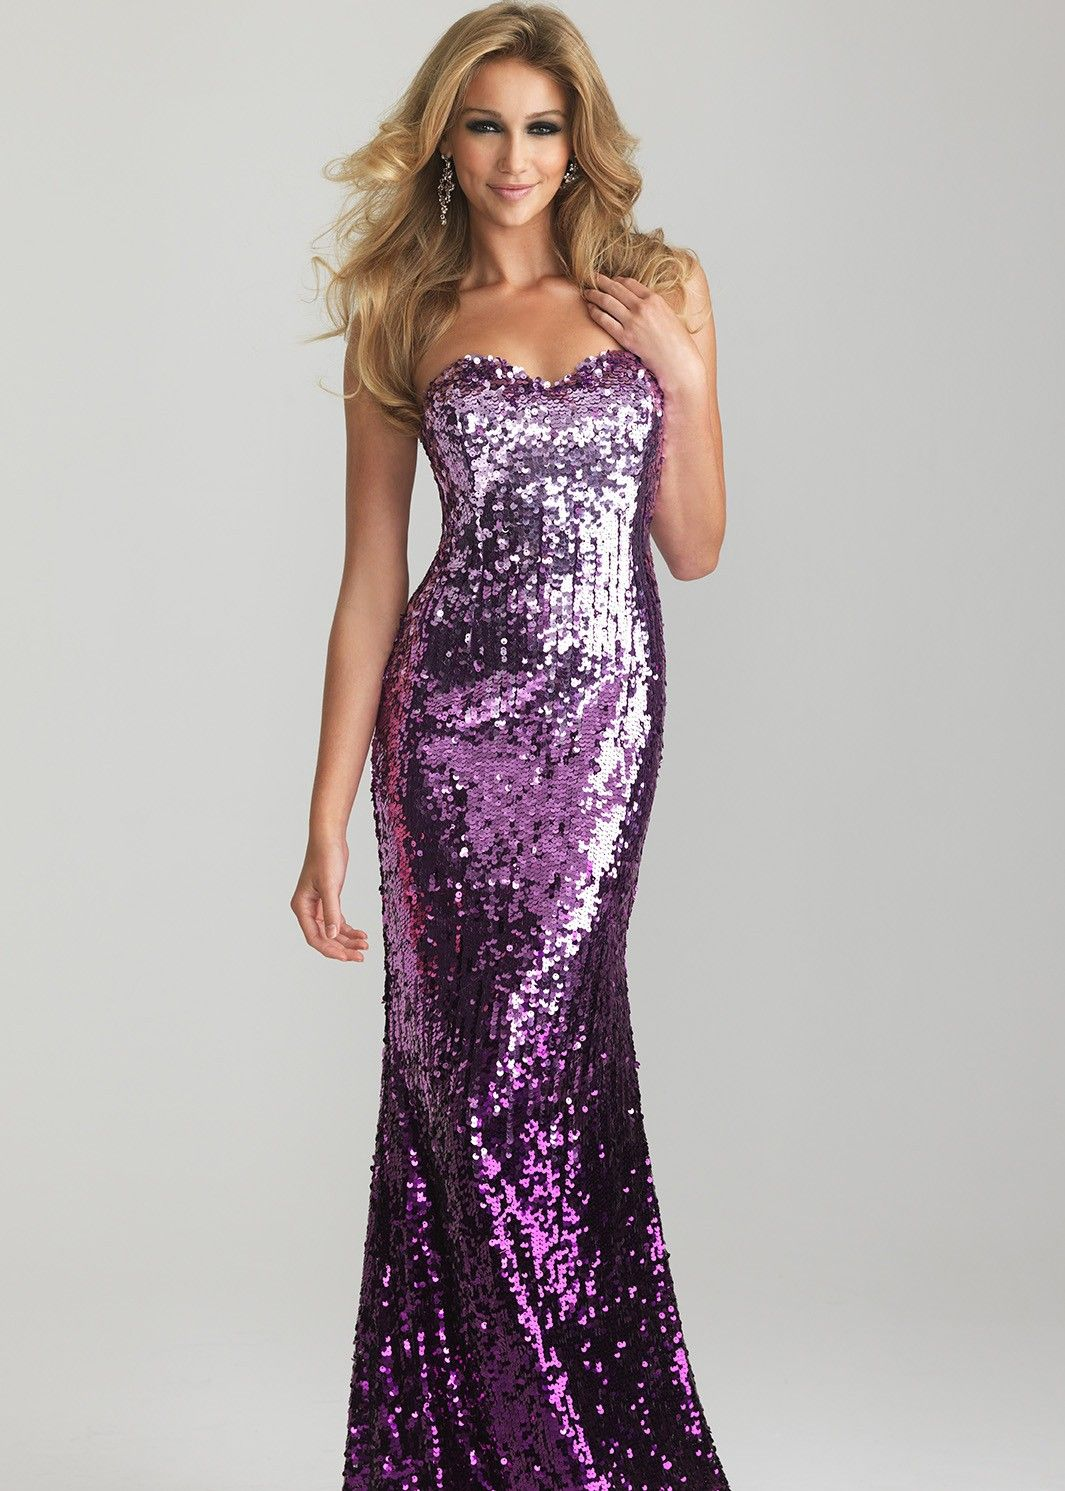 Sparkly Purple Ombre Strapless Sequin Prom Dress - Night ...